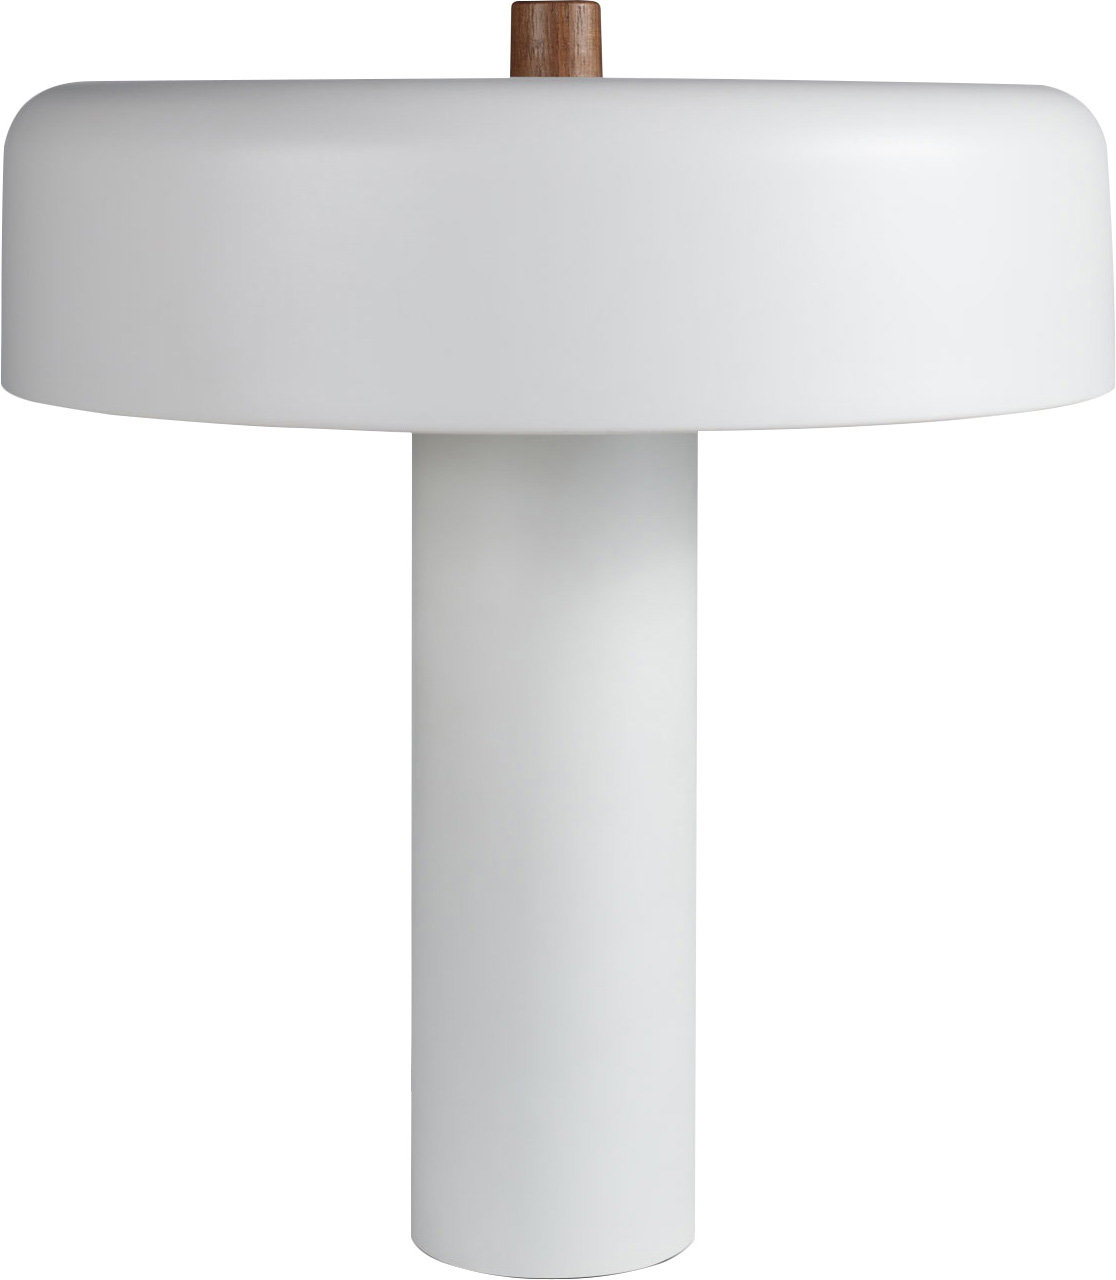 punk table lamp reviews accent lighting seattle square metal side dining chair with arms hamptons style uma enterprises lamps small round foyer kmart outdoor furniture marble